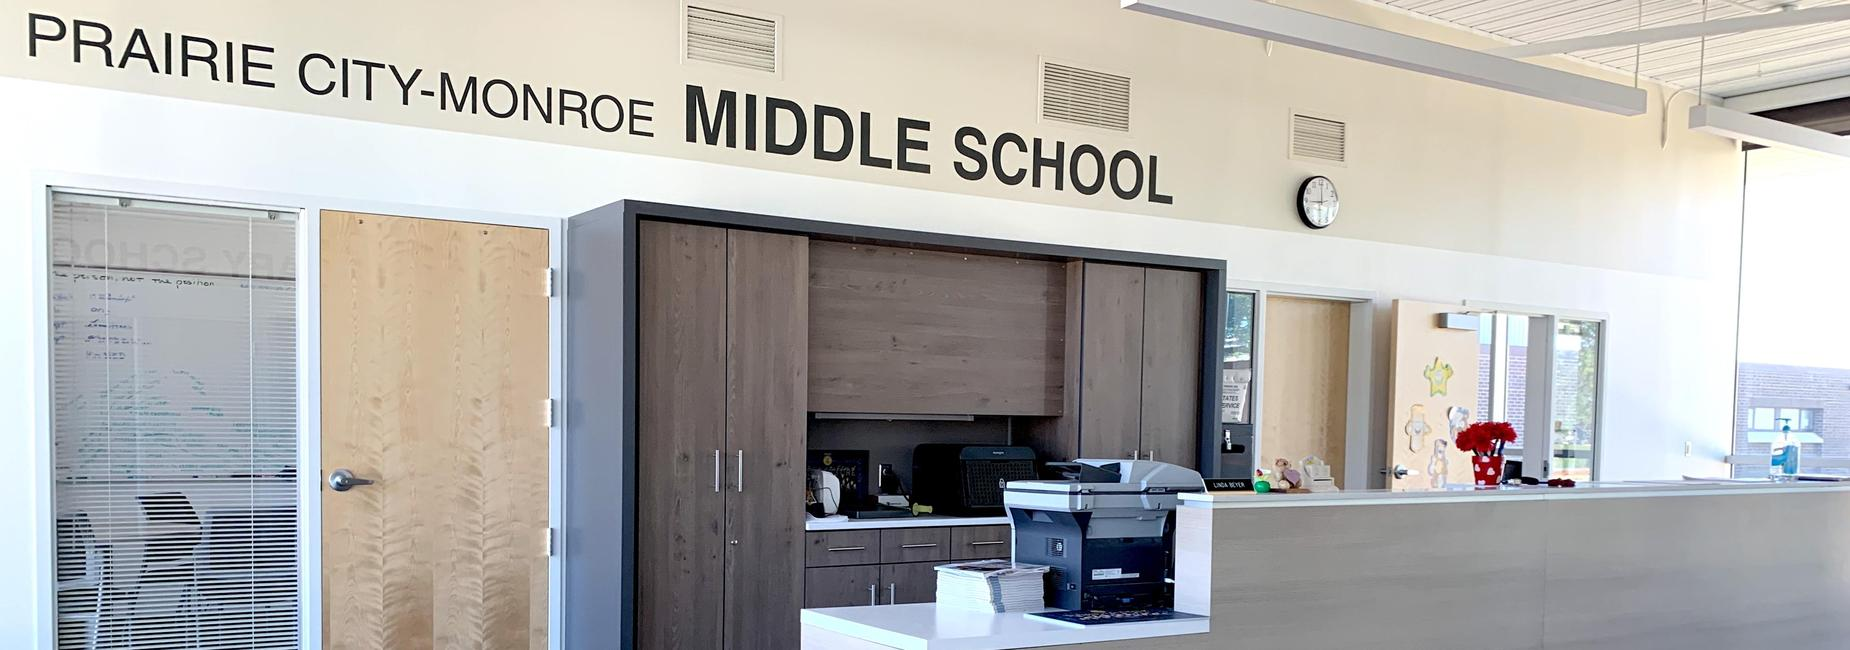 Picture of Middle school front office